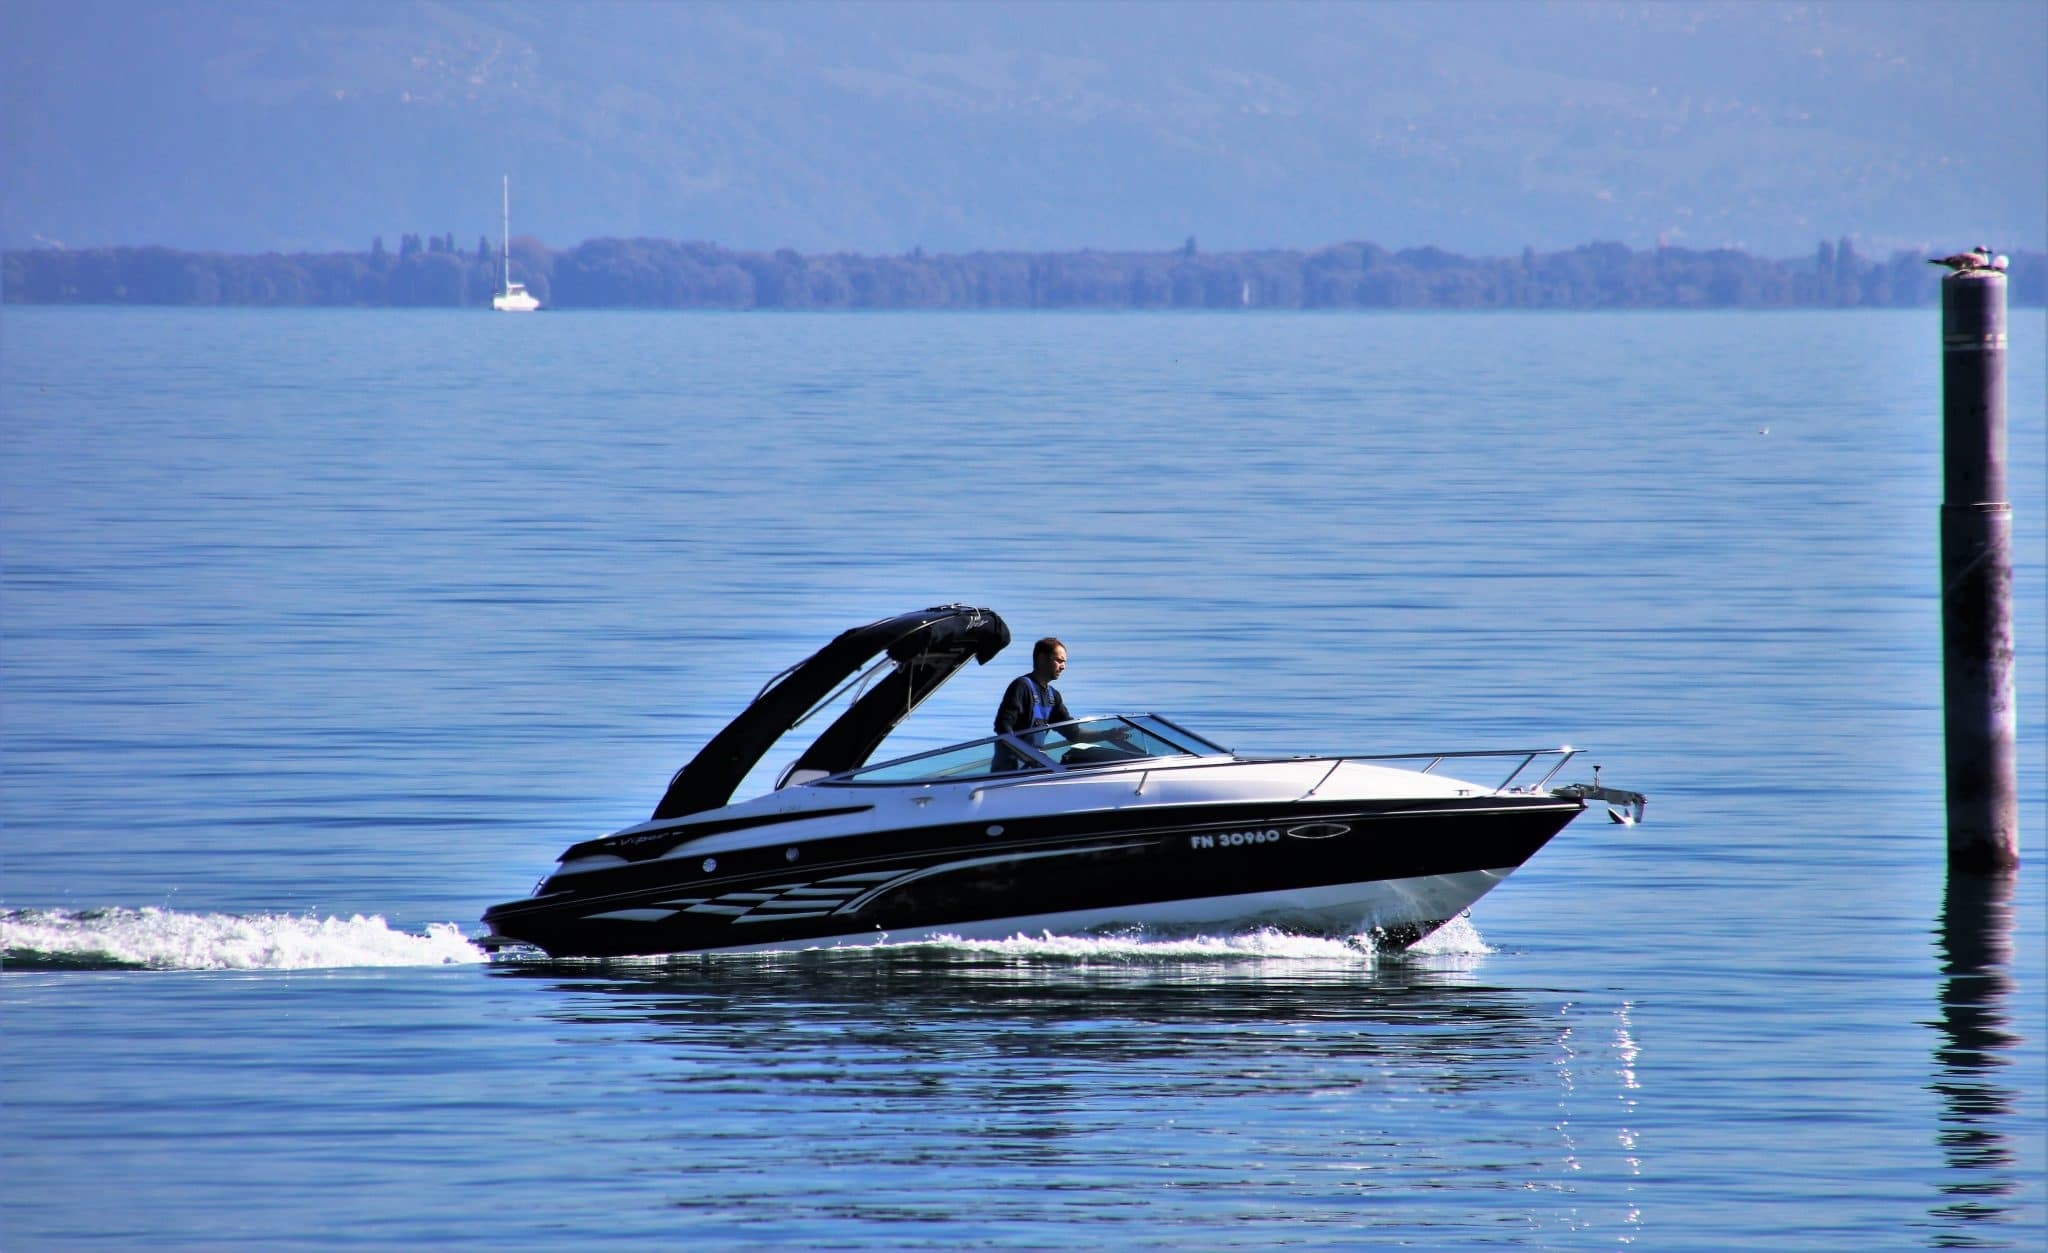 man driving a jet boat on a body of water